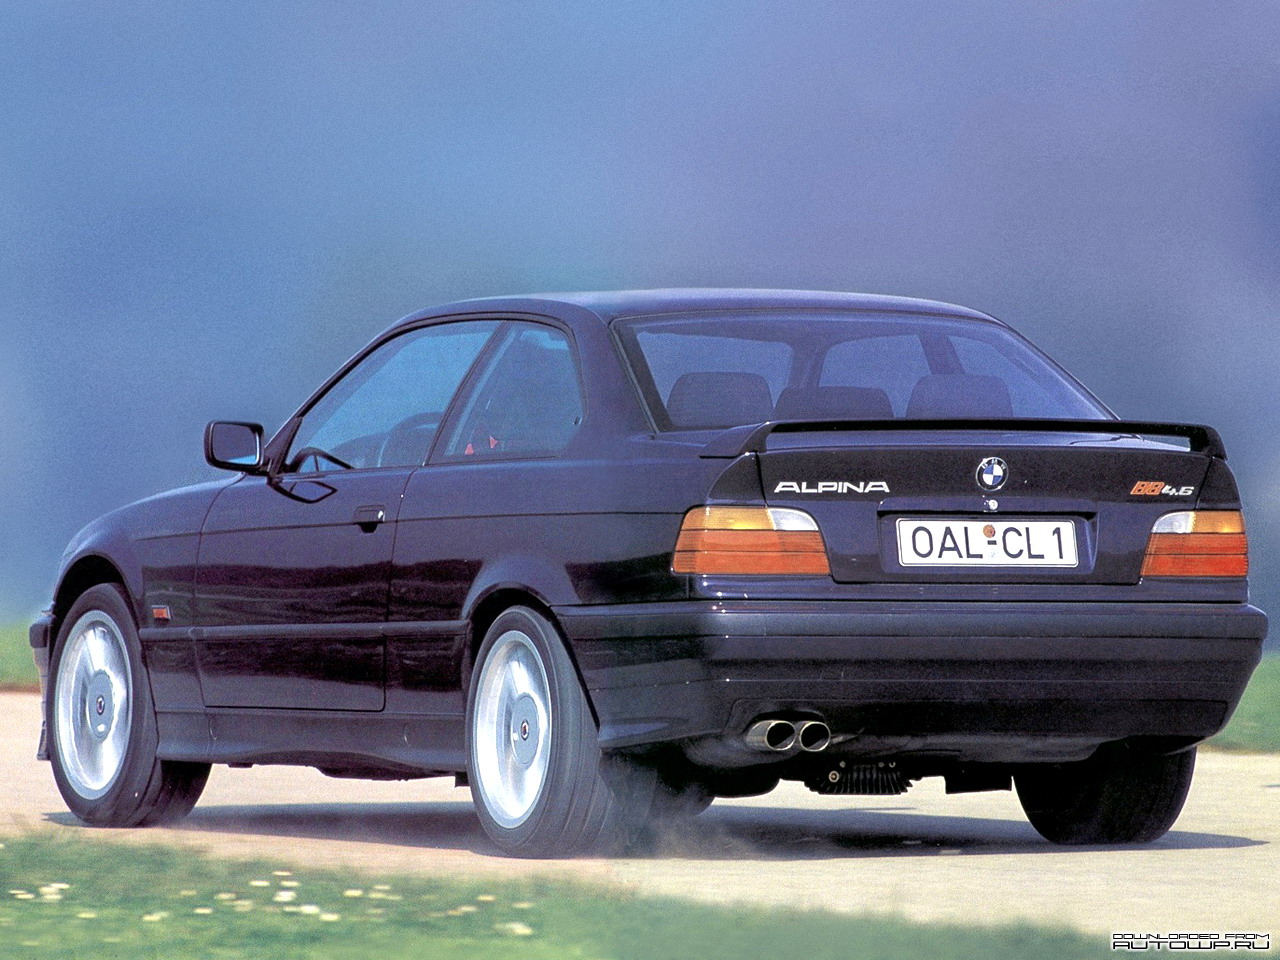 Alpina B8 4 6 E36 Photos Photogallery With 3 Pics HD Wallpapers Download free images and photos [musssic.tk]